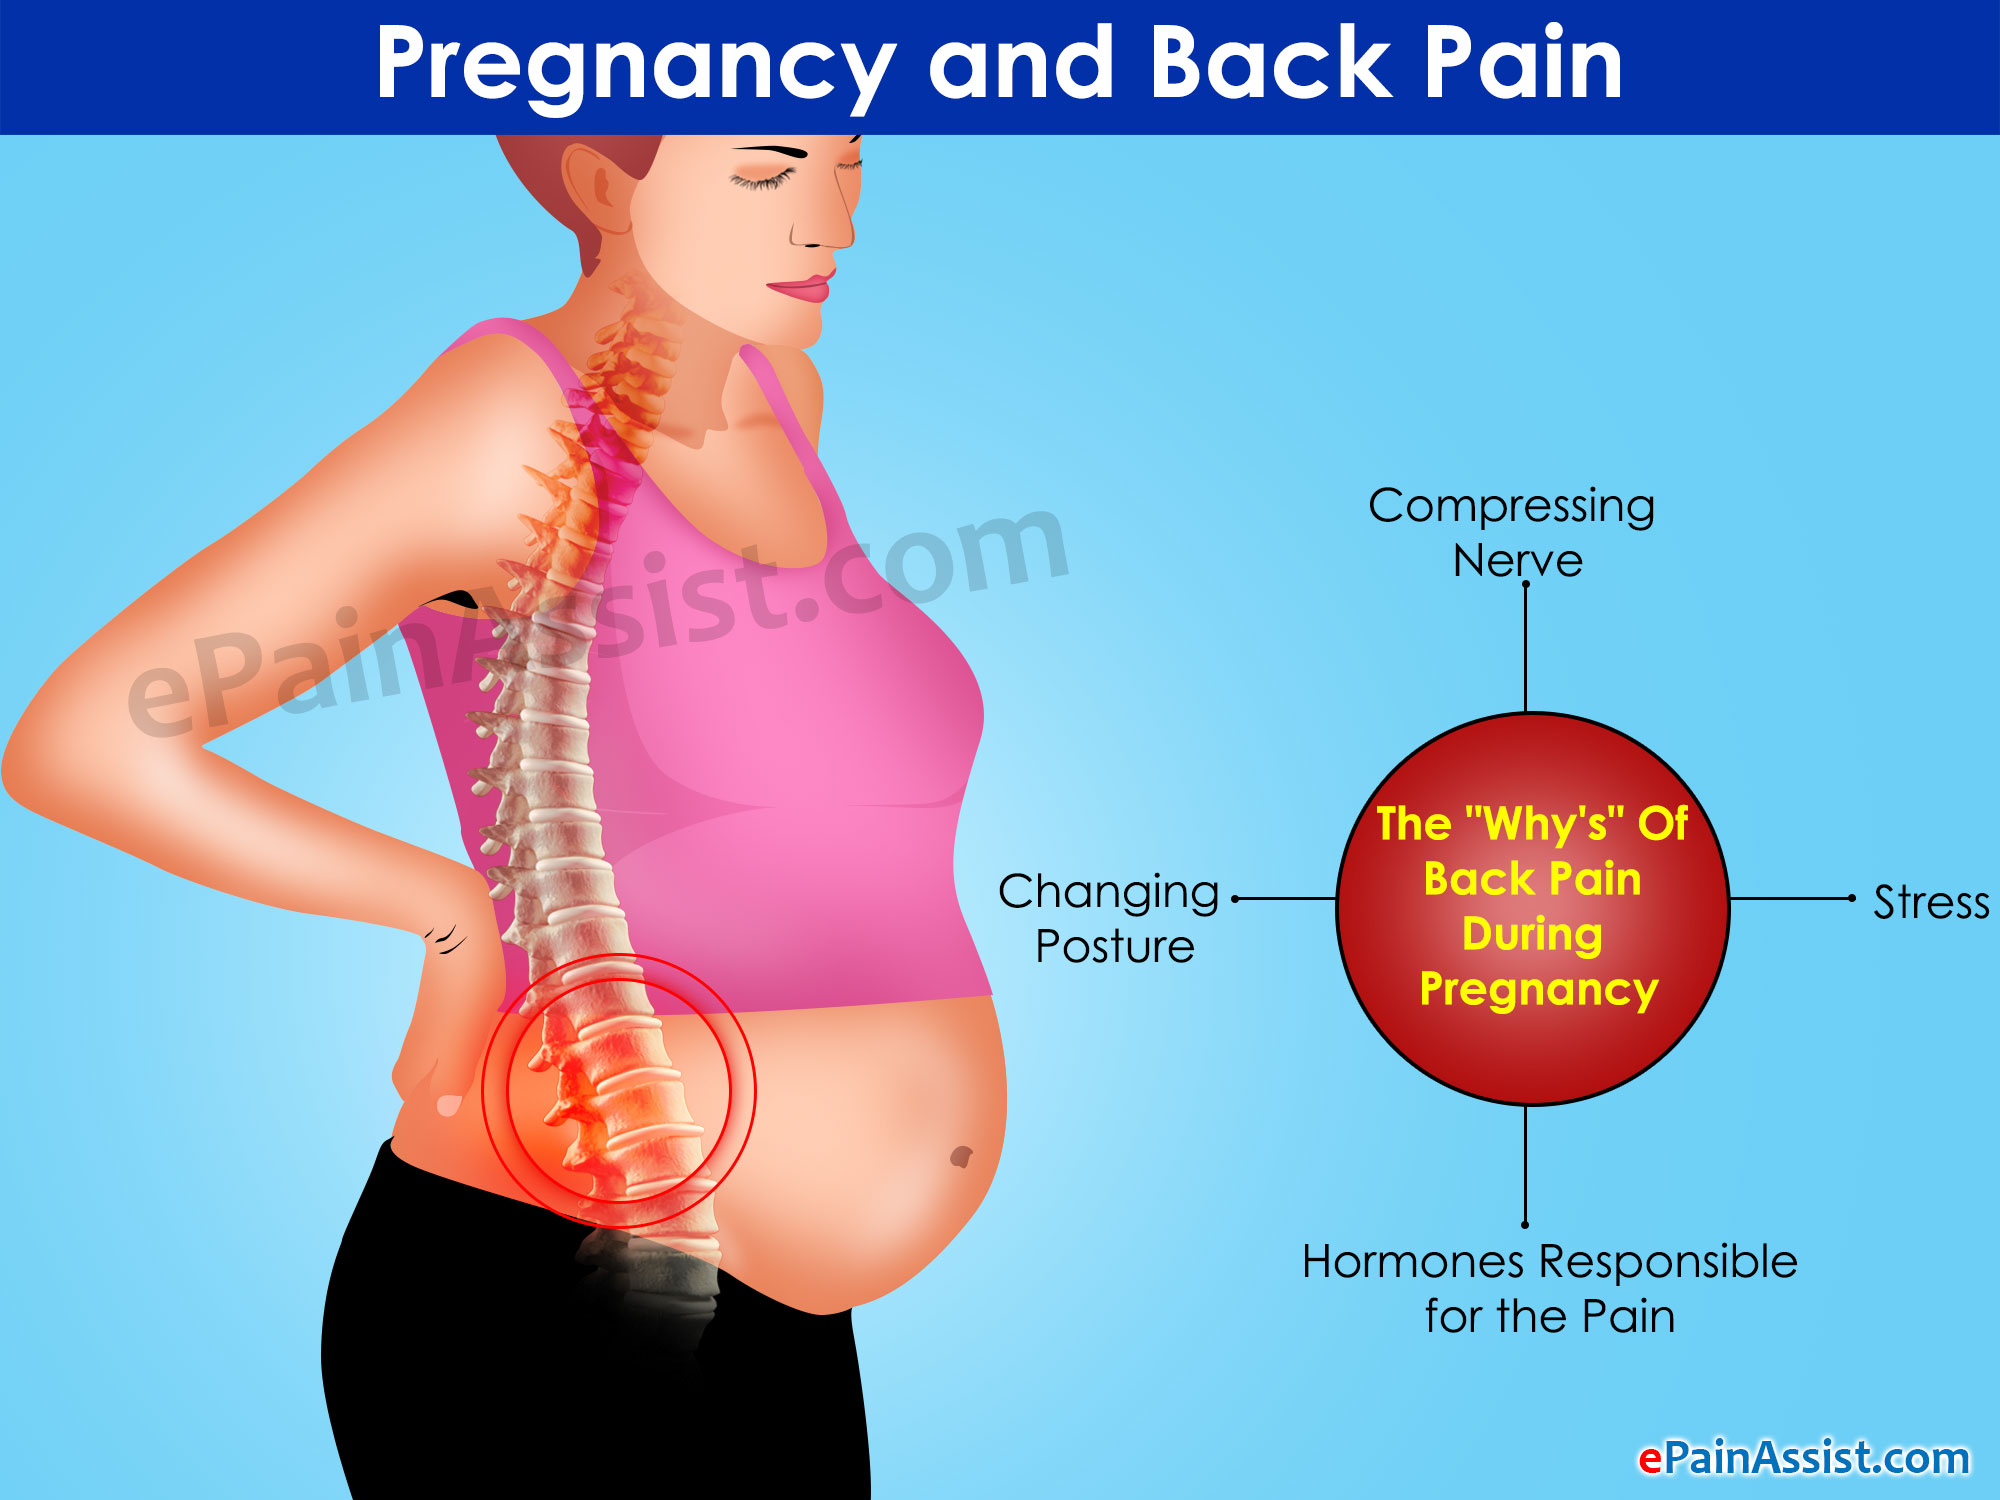 Pregnancy and Back Pain: The